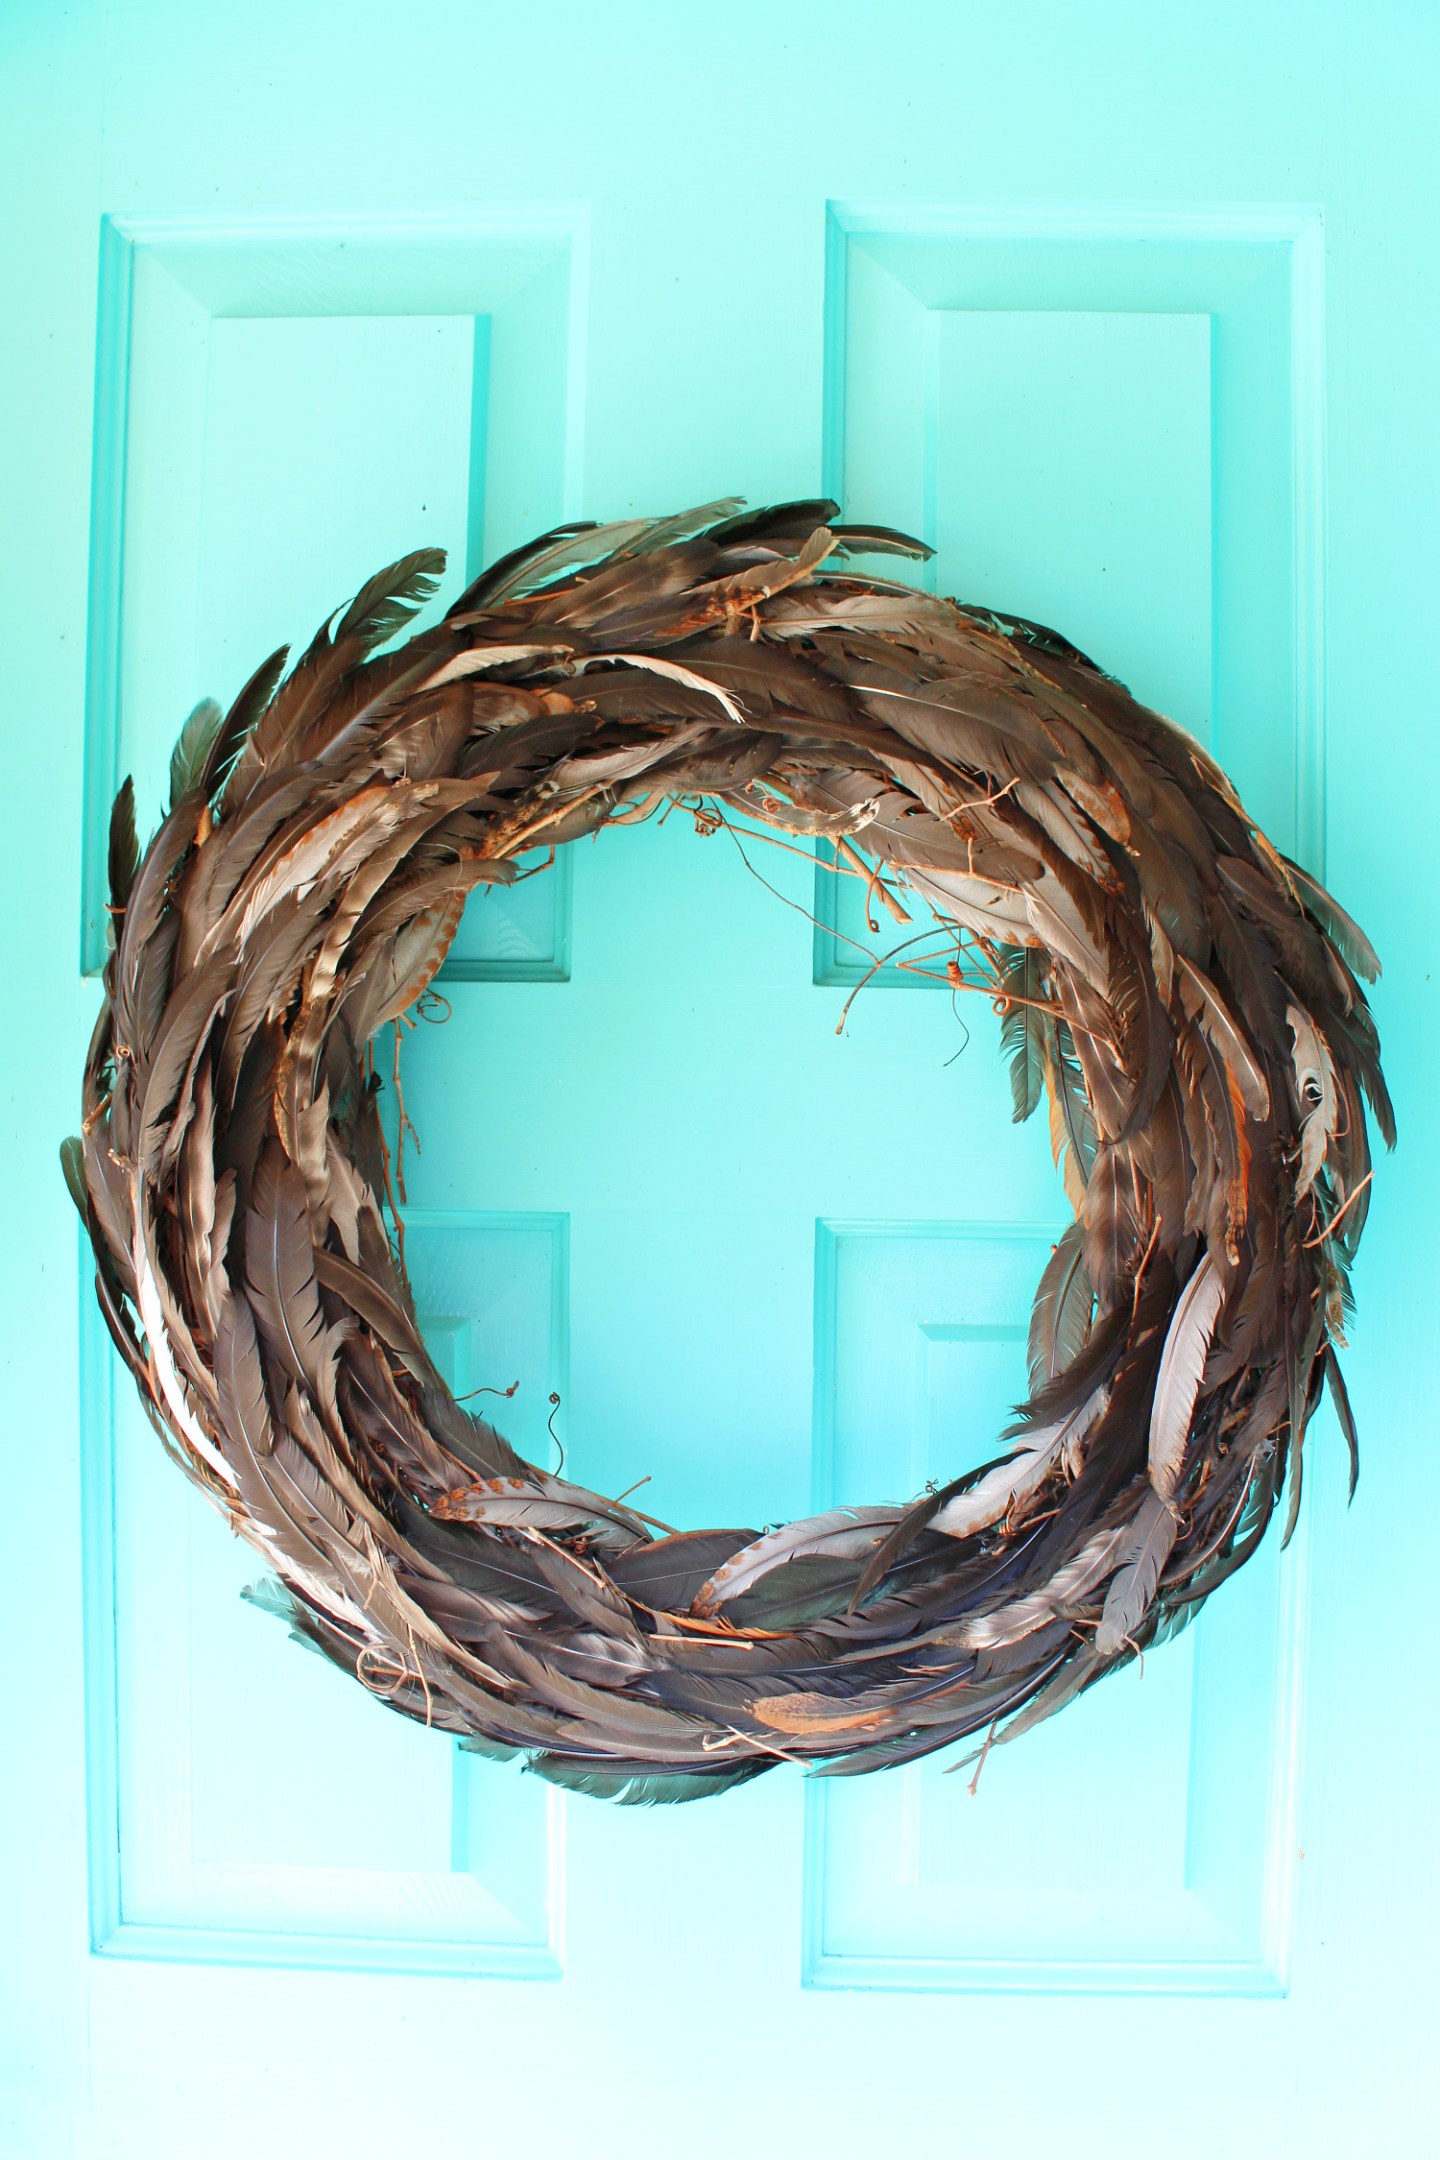 DIY Feather Wreath (Using Feathers My Chickens Molted)